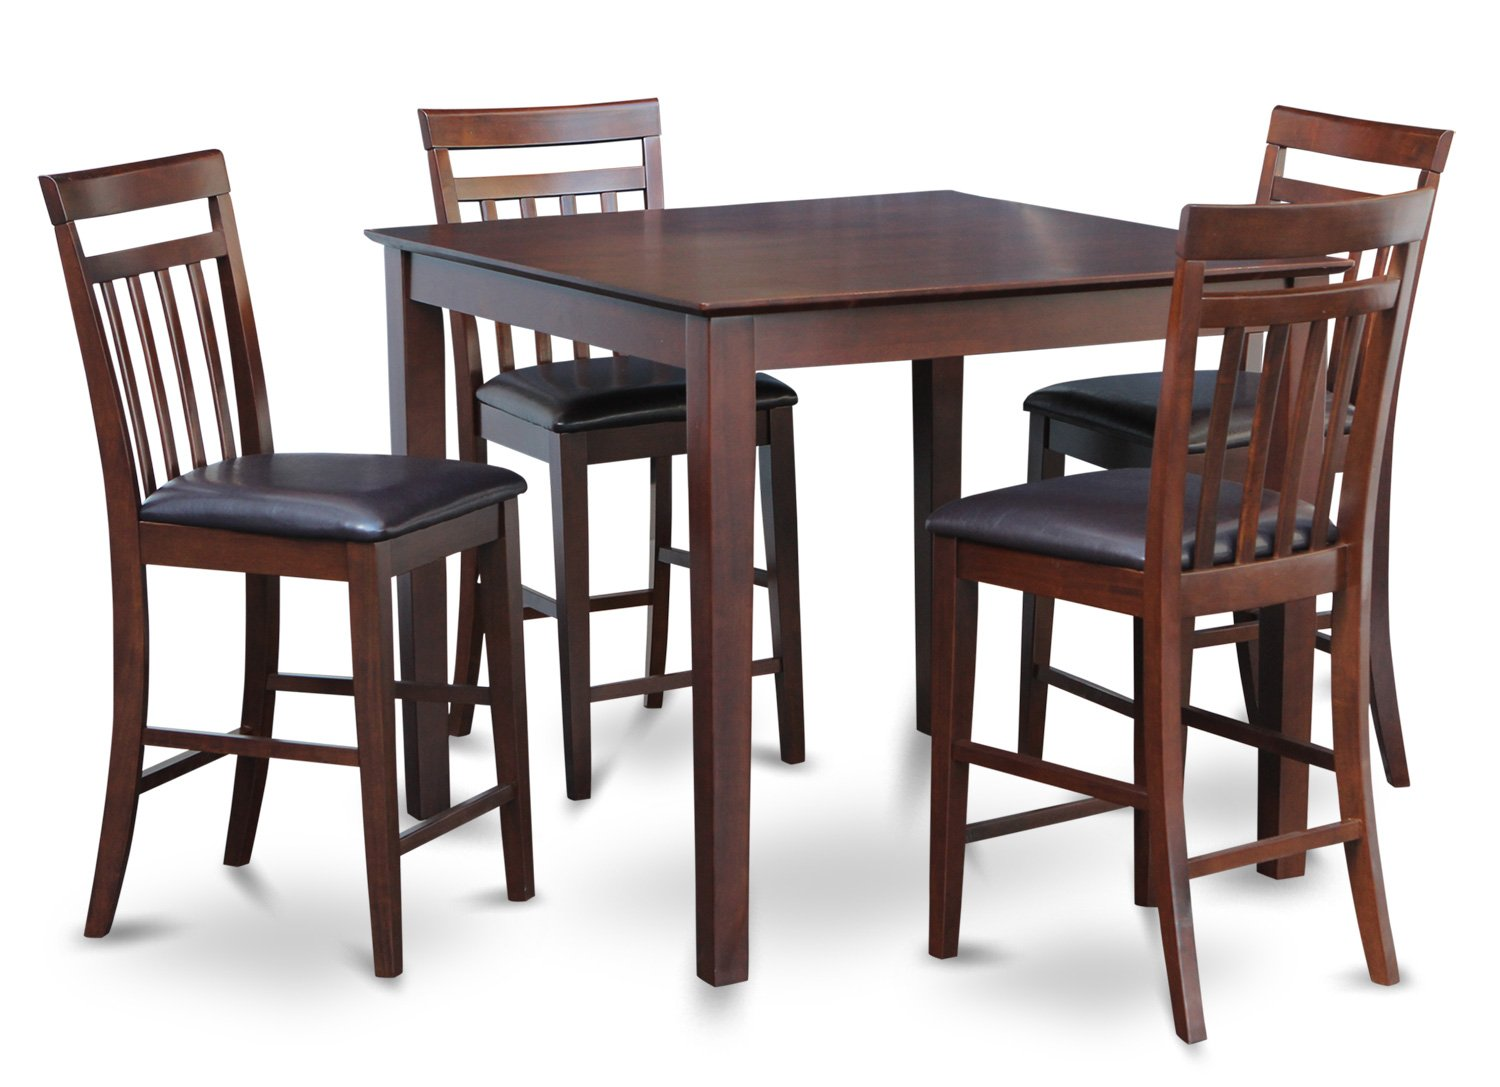 East west 5 pc square pub counter height table dinette set for Square dinette sets